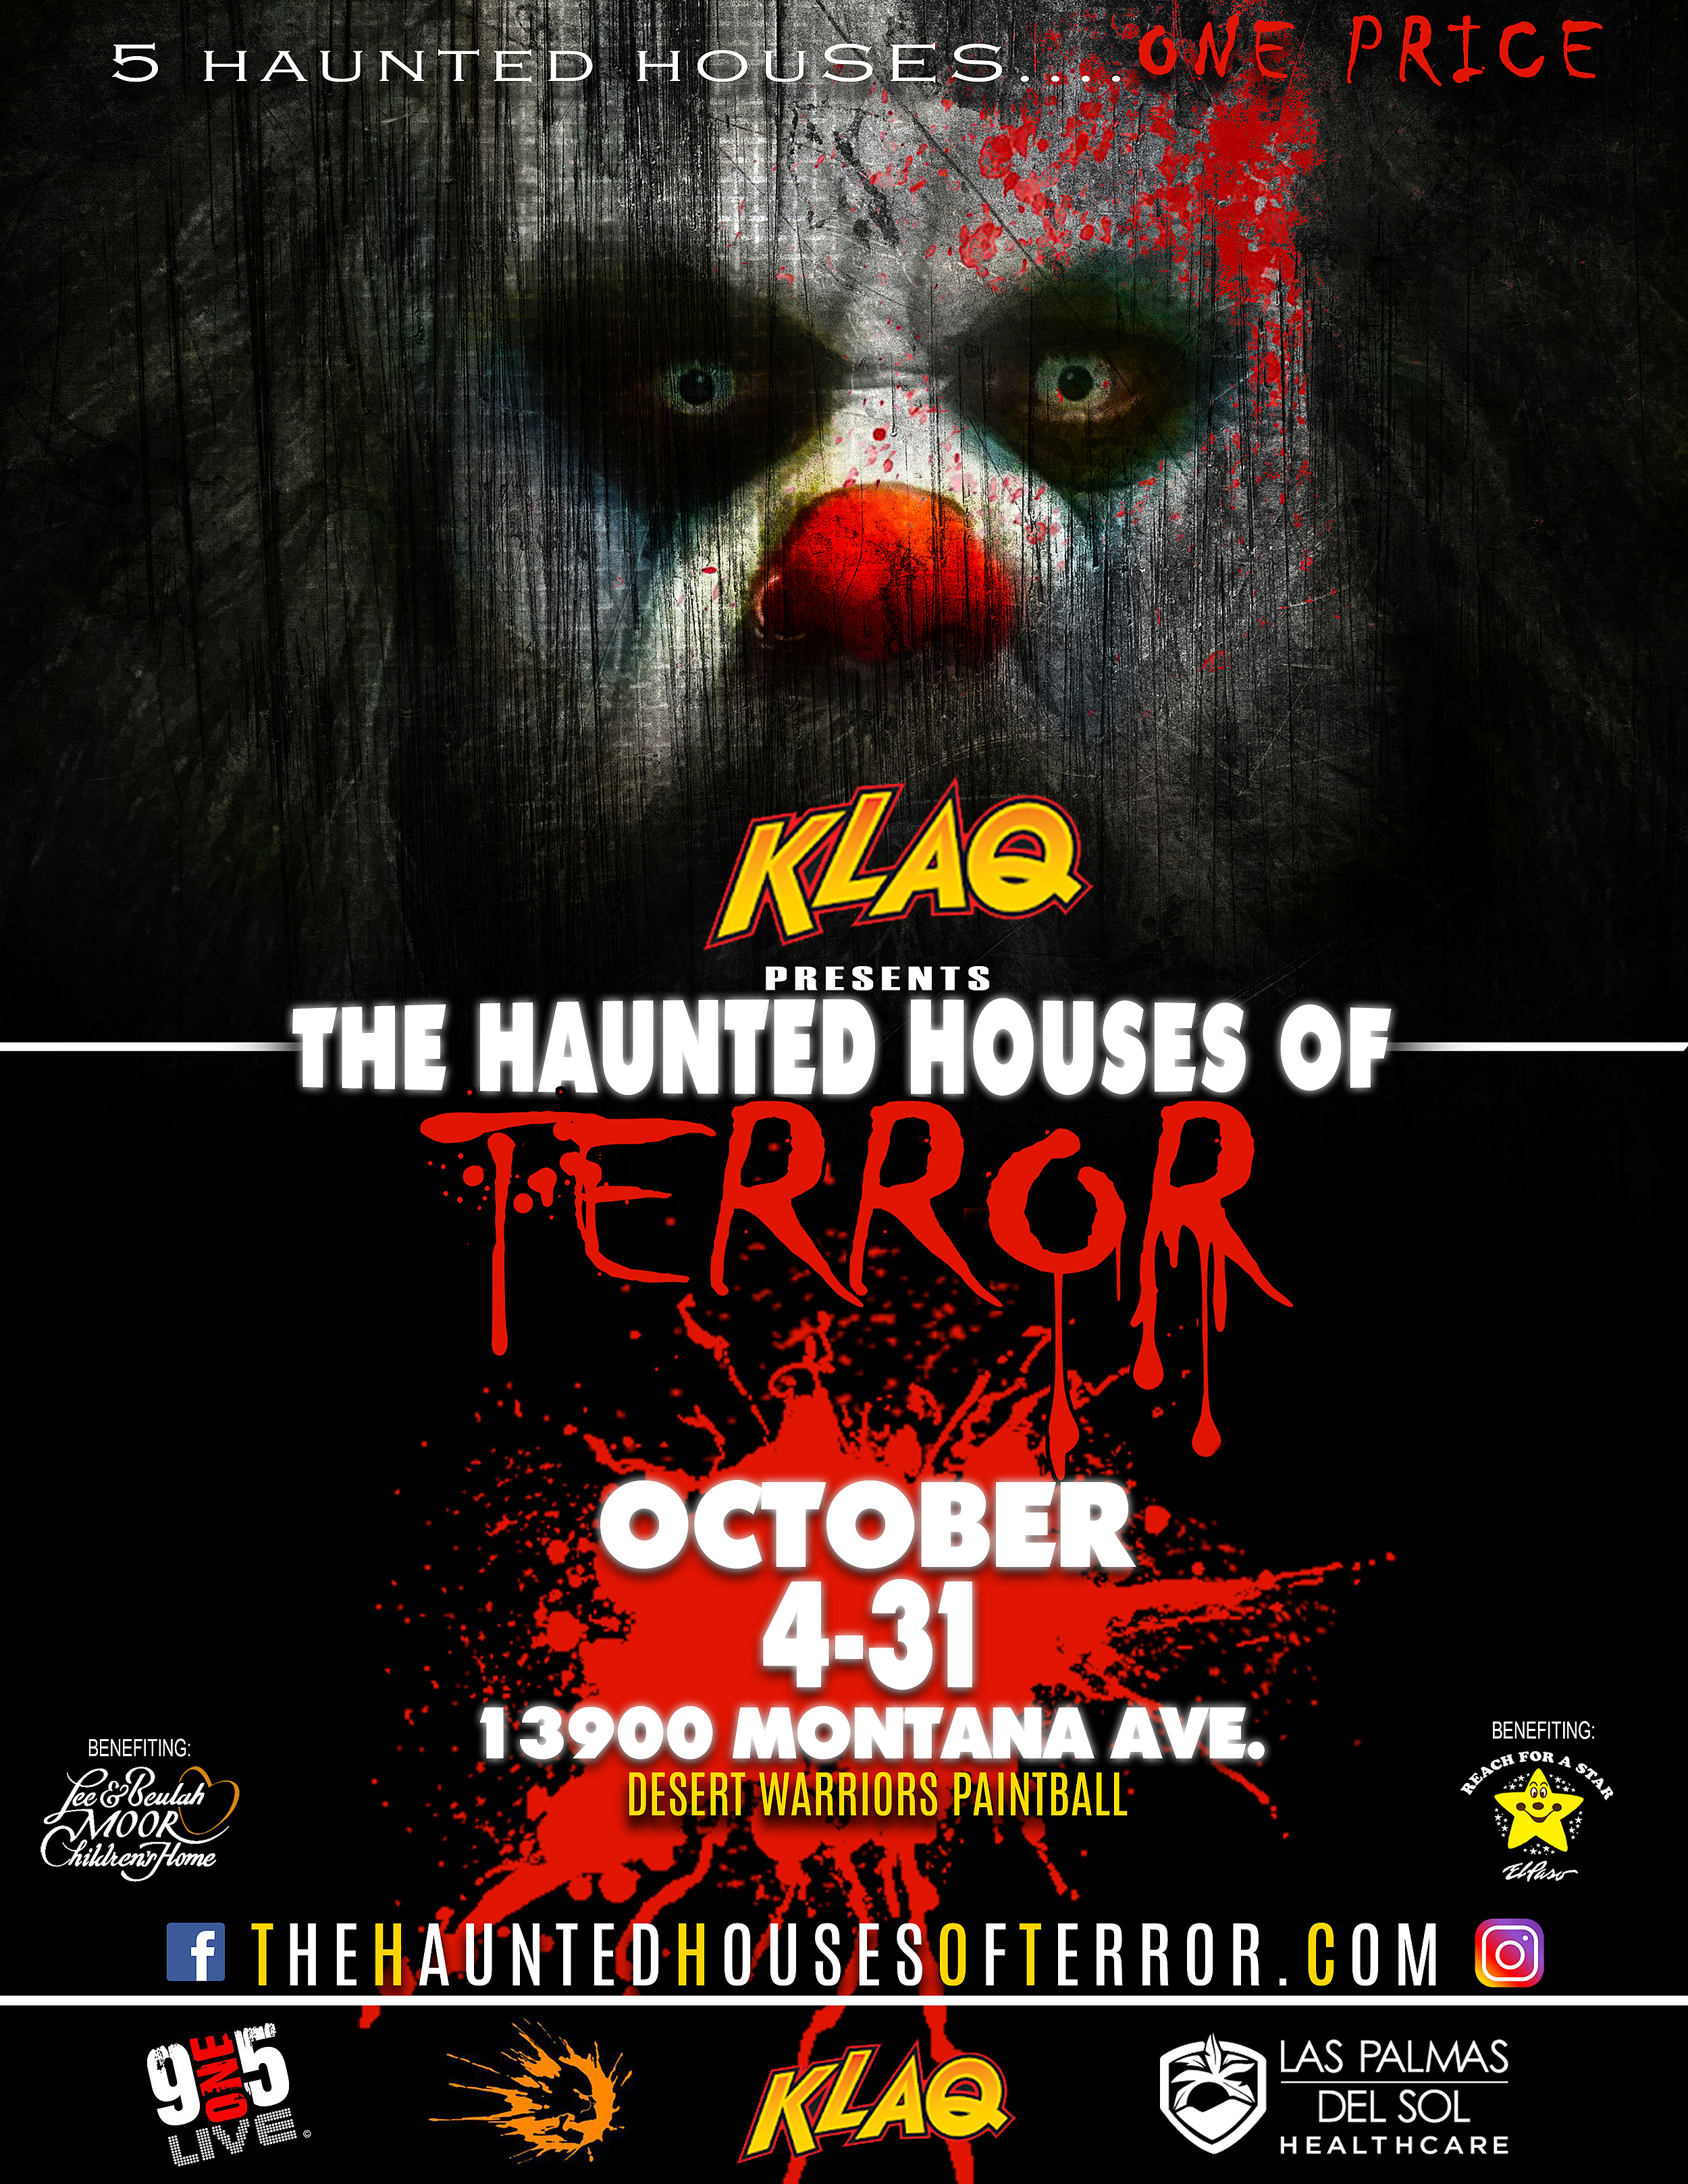 klaq presents haunted houses of terror